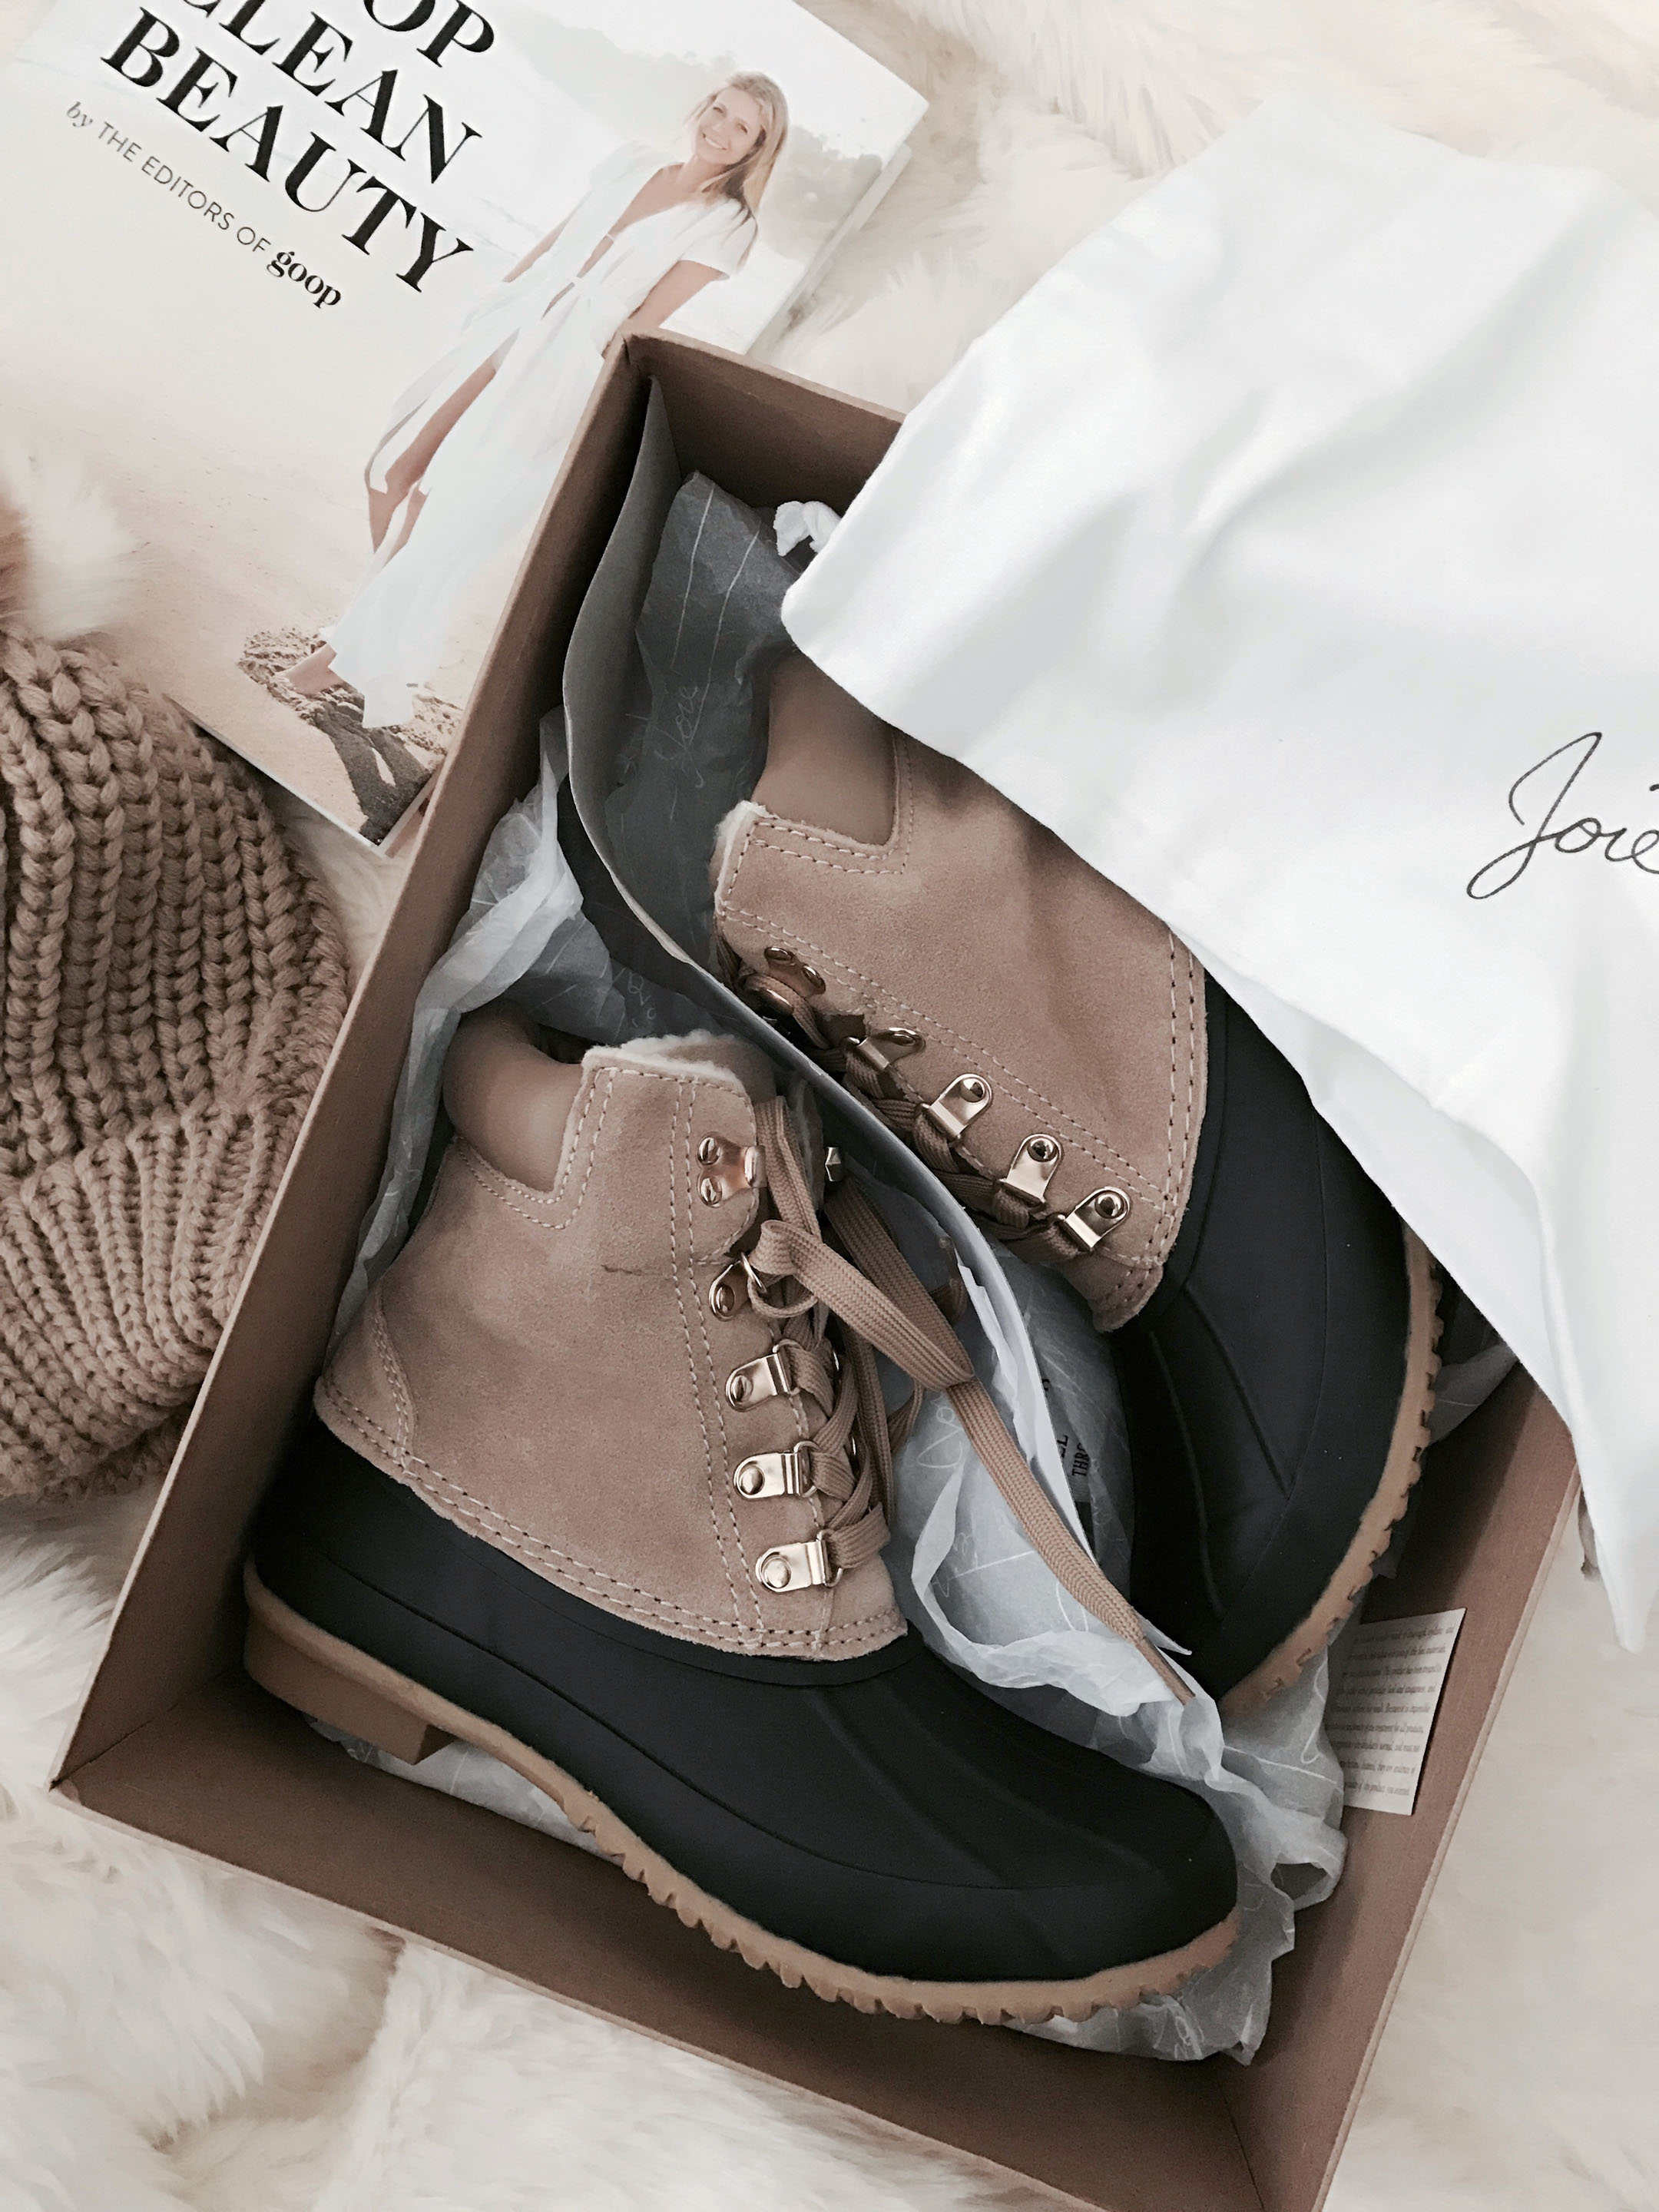 Joie snow boots